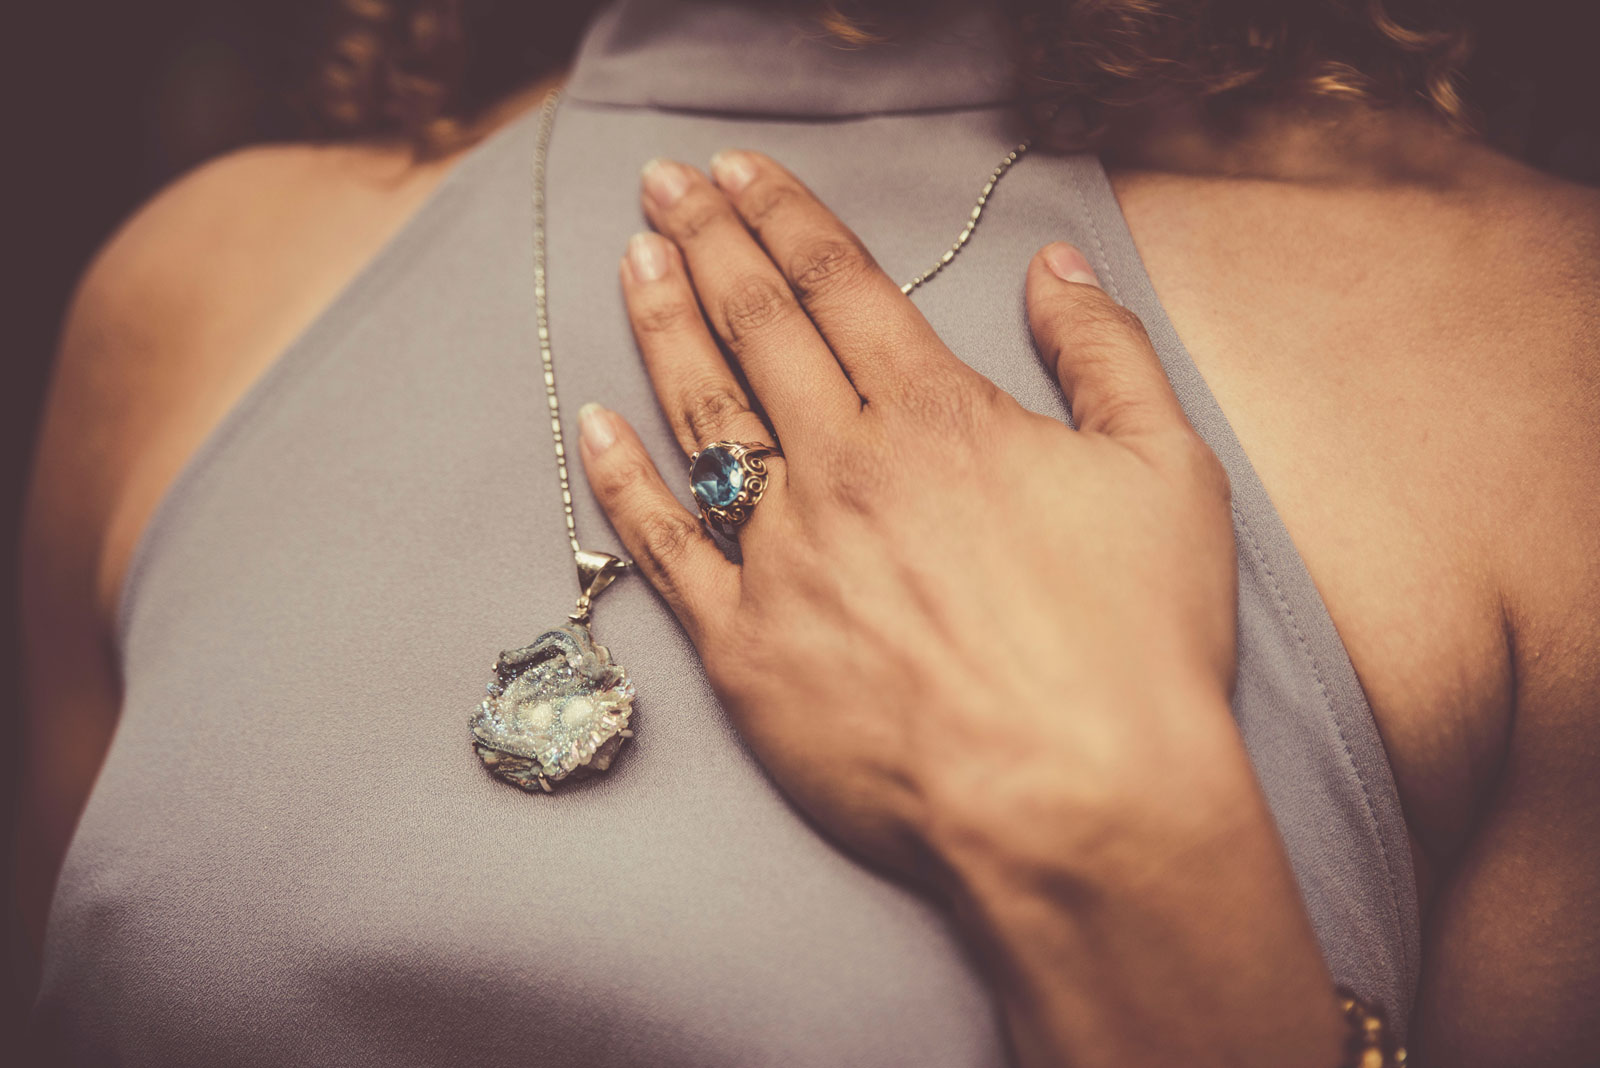 Woman Showing Her Necklace | How Fake Jewelry Gives Fashion Jewelry A Bad Name